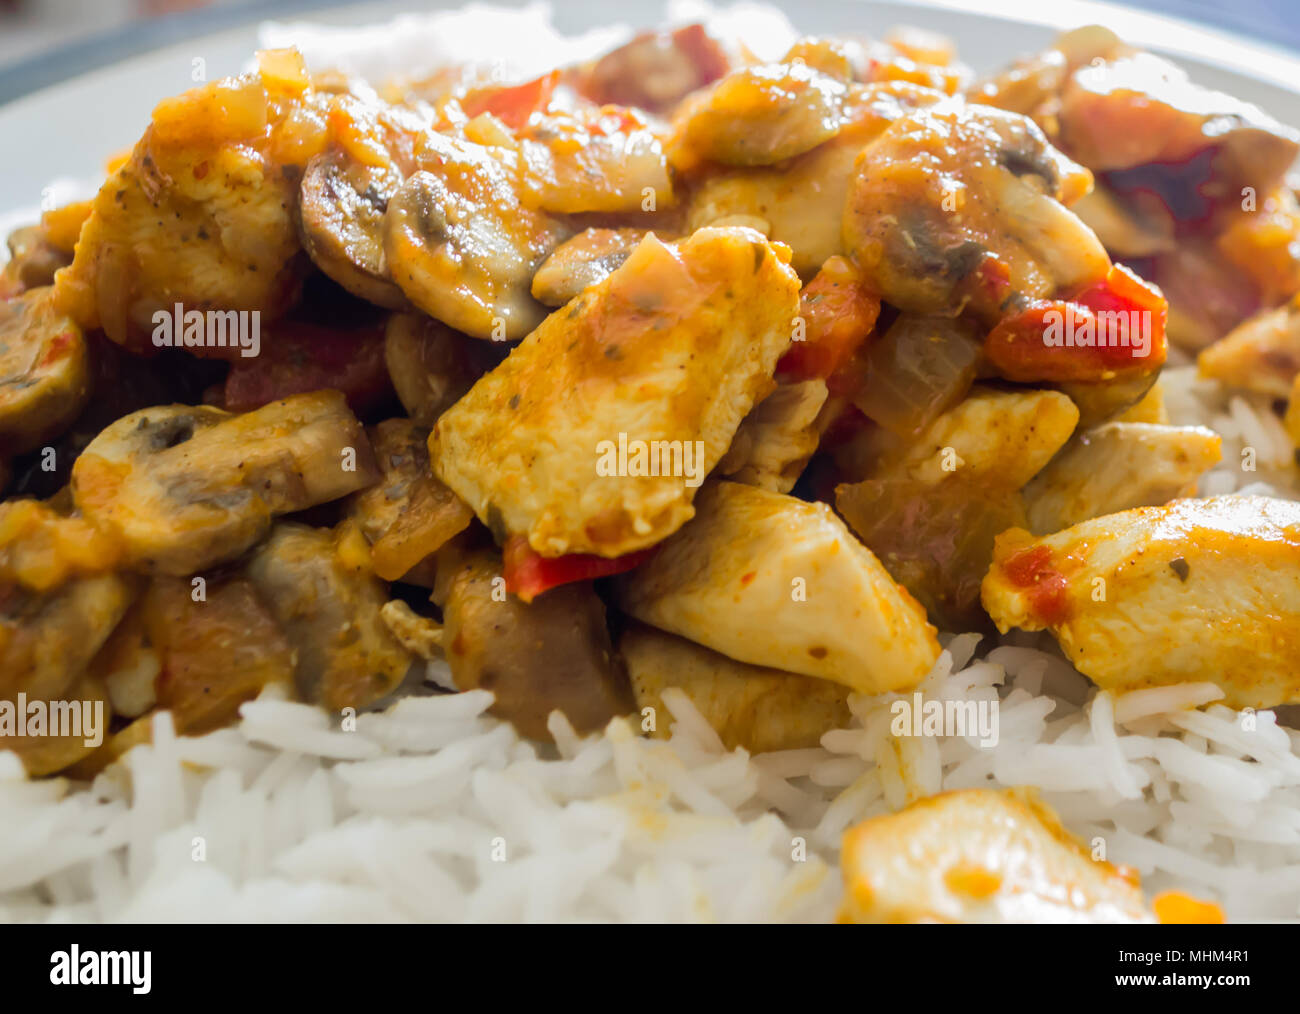 A close up of a chicken curry containing onions and peppers sitting on a bed of rice - Stock Image